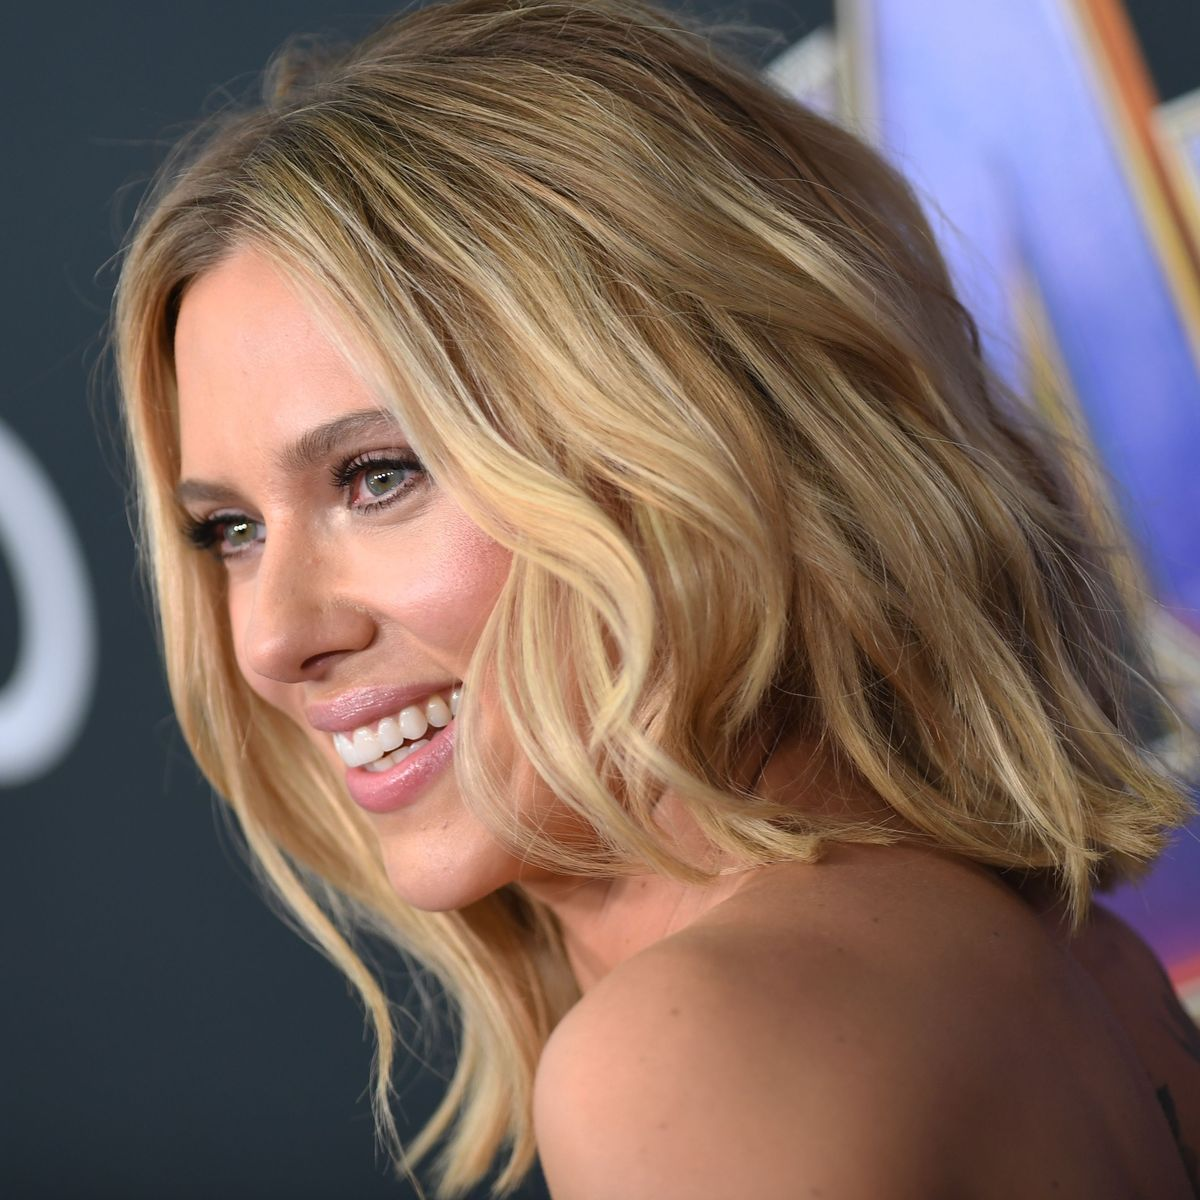 Scarlett Johansson Says She Has The Right To Play Any Person